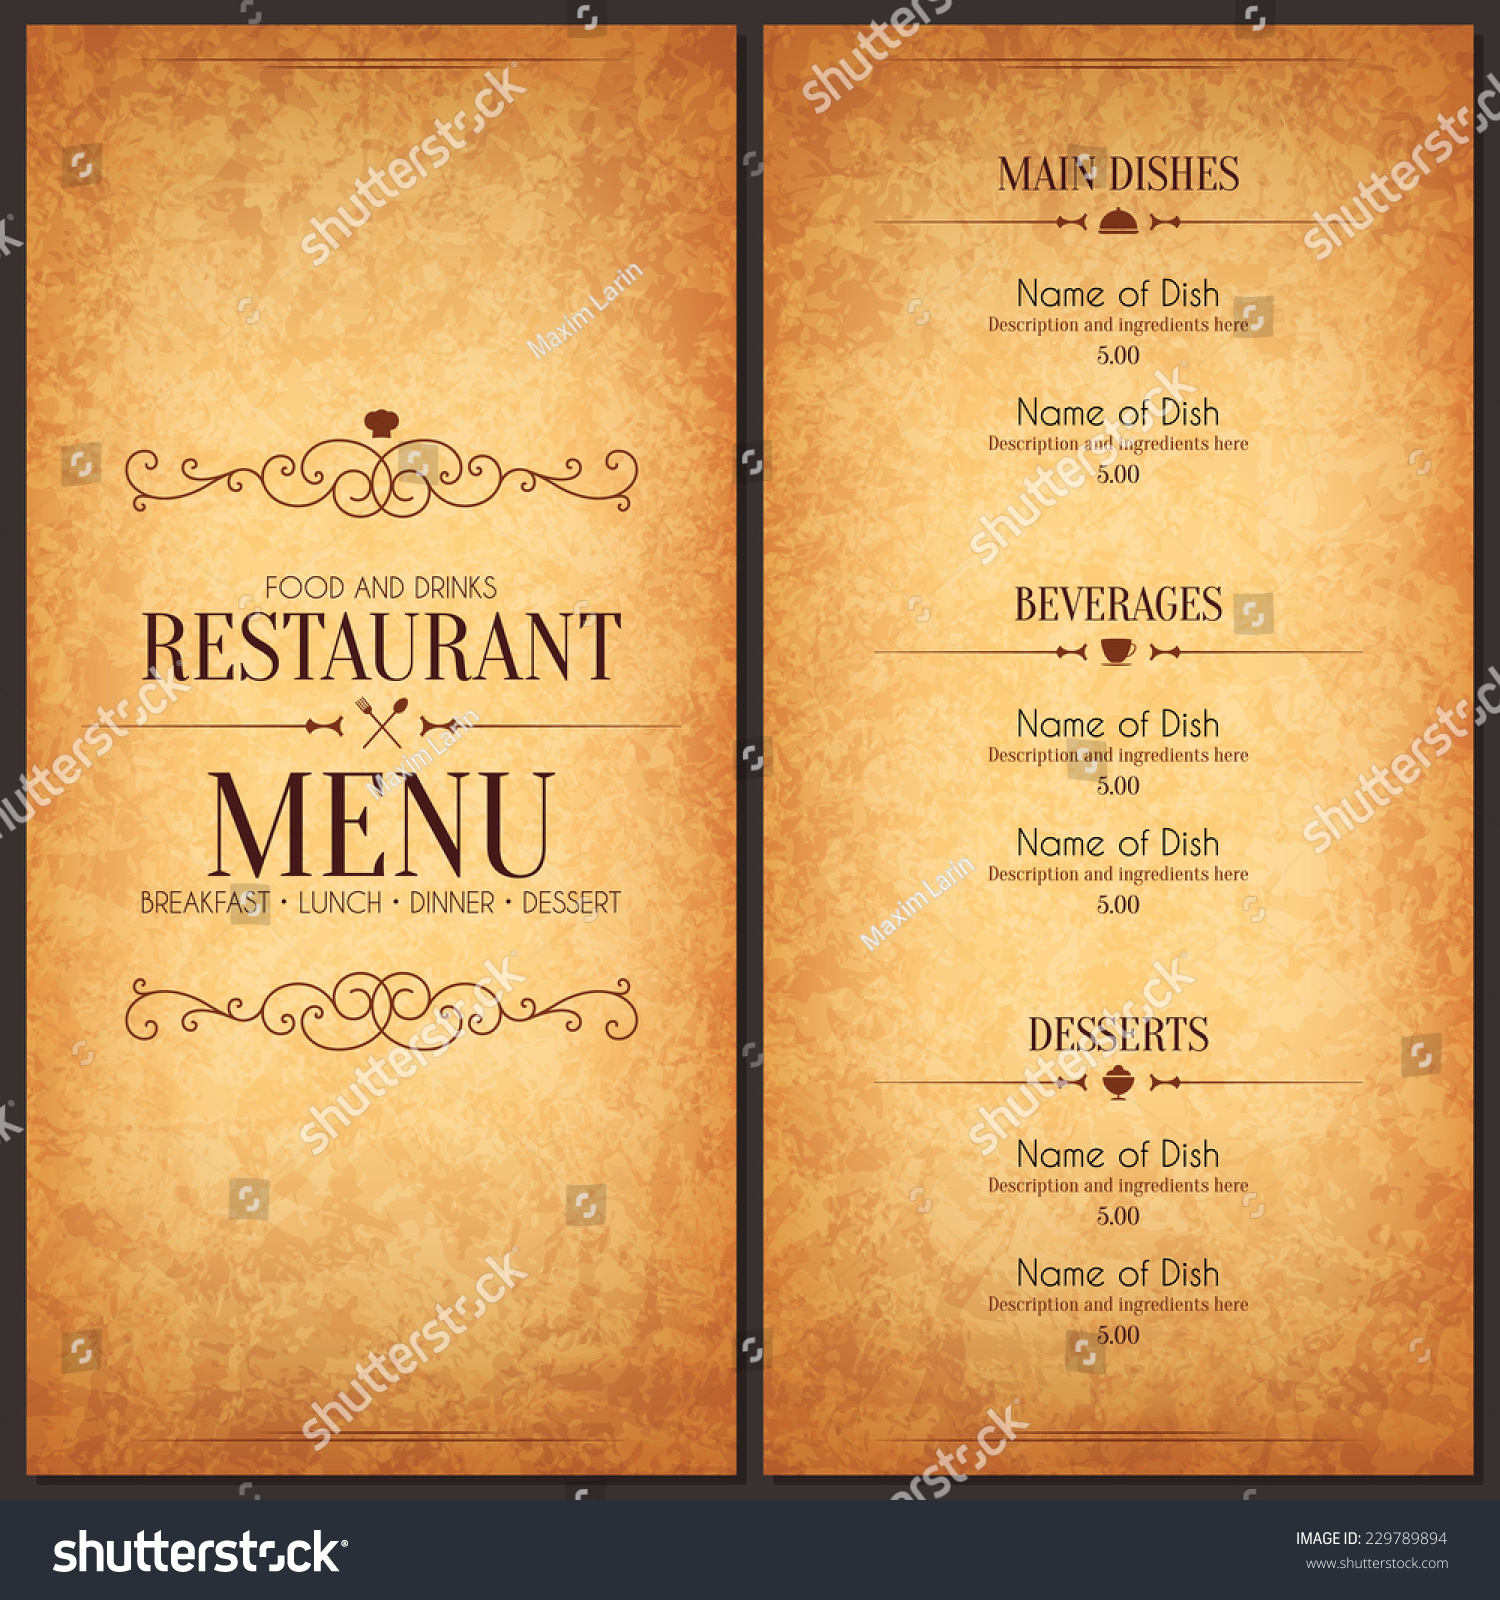 restaurant menu design vector menu brochure stock vector 229789894 vector menu brochure template for cafe coffee house restaurant